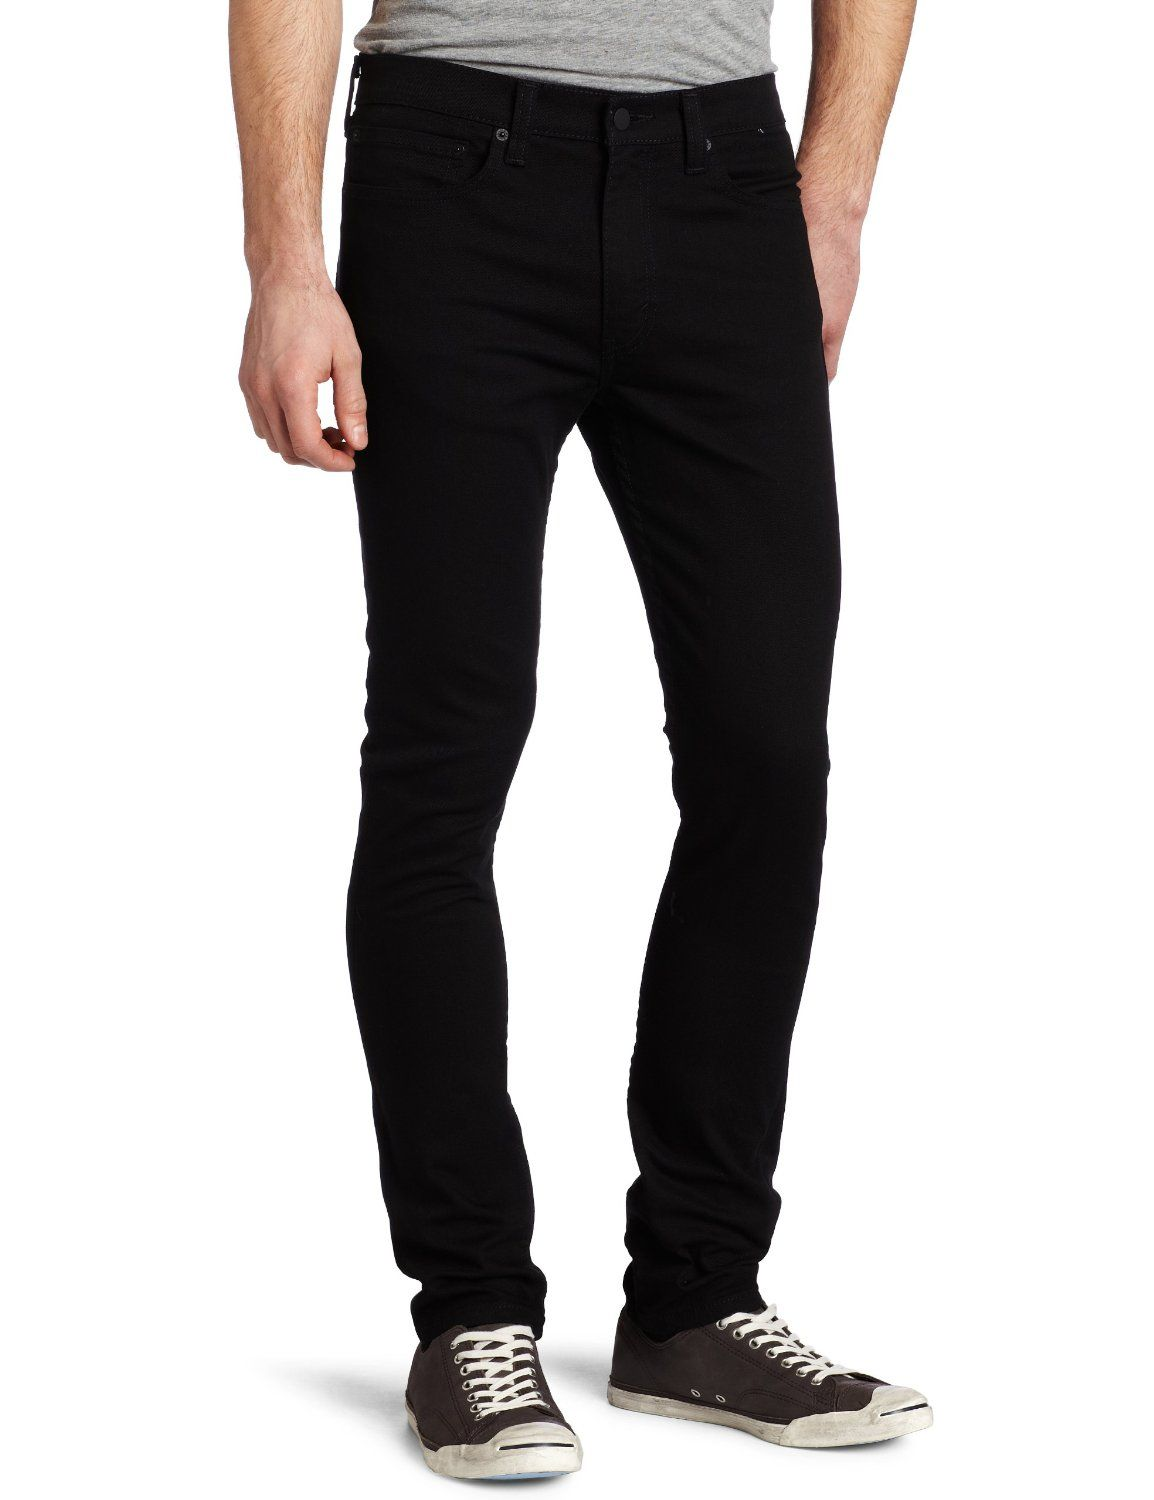 Cool Black Skinny Jeans for Men | Celana | Pinterest | Dressing ...